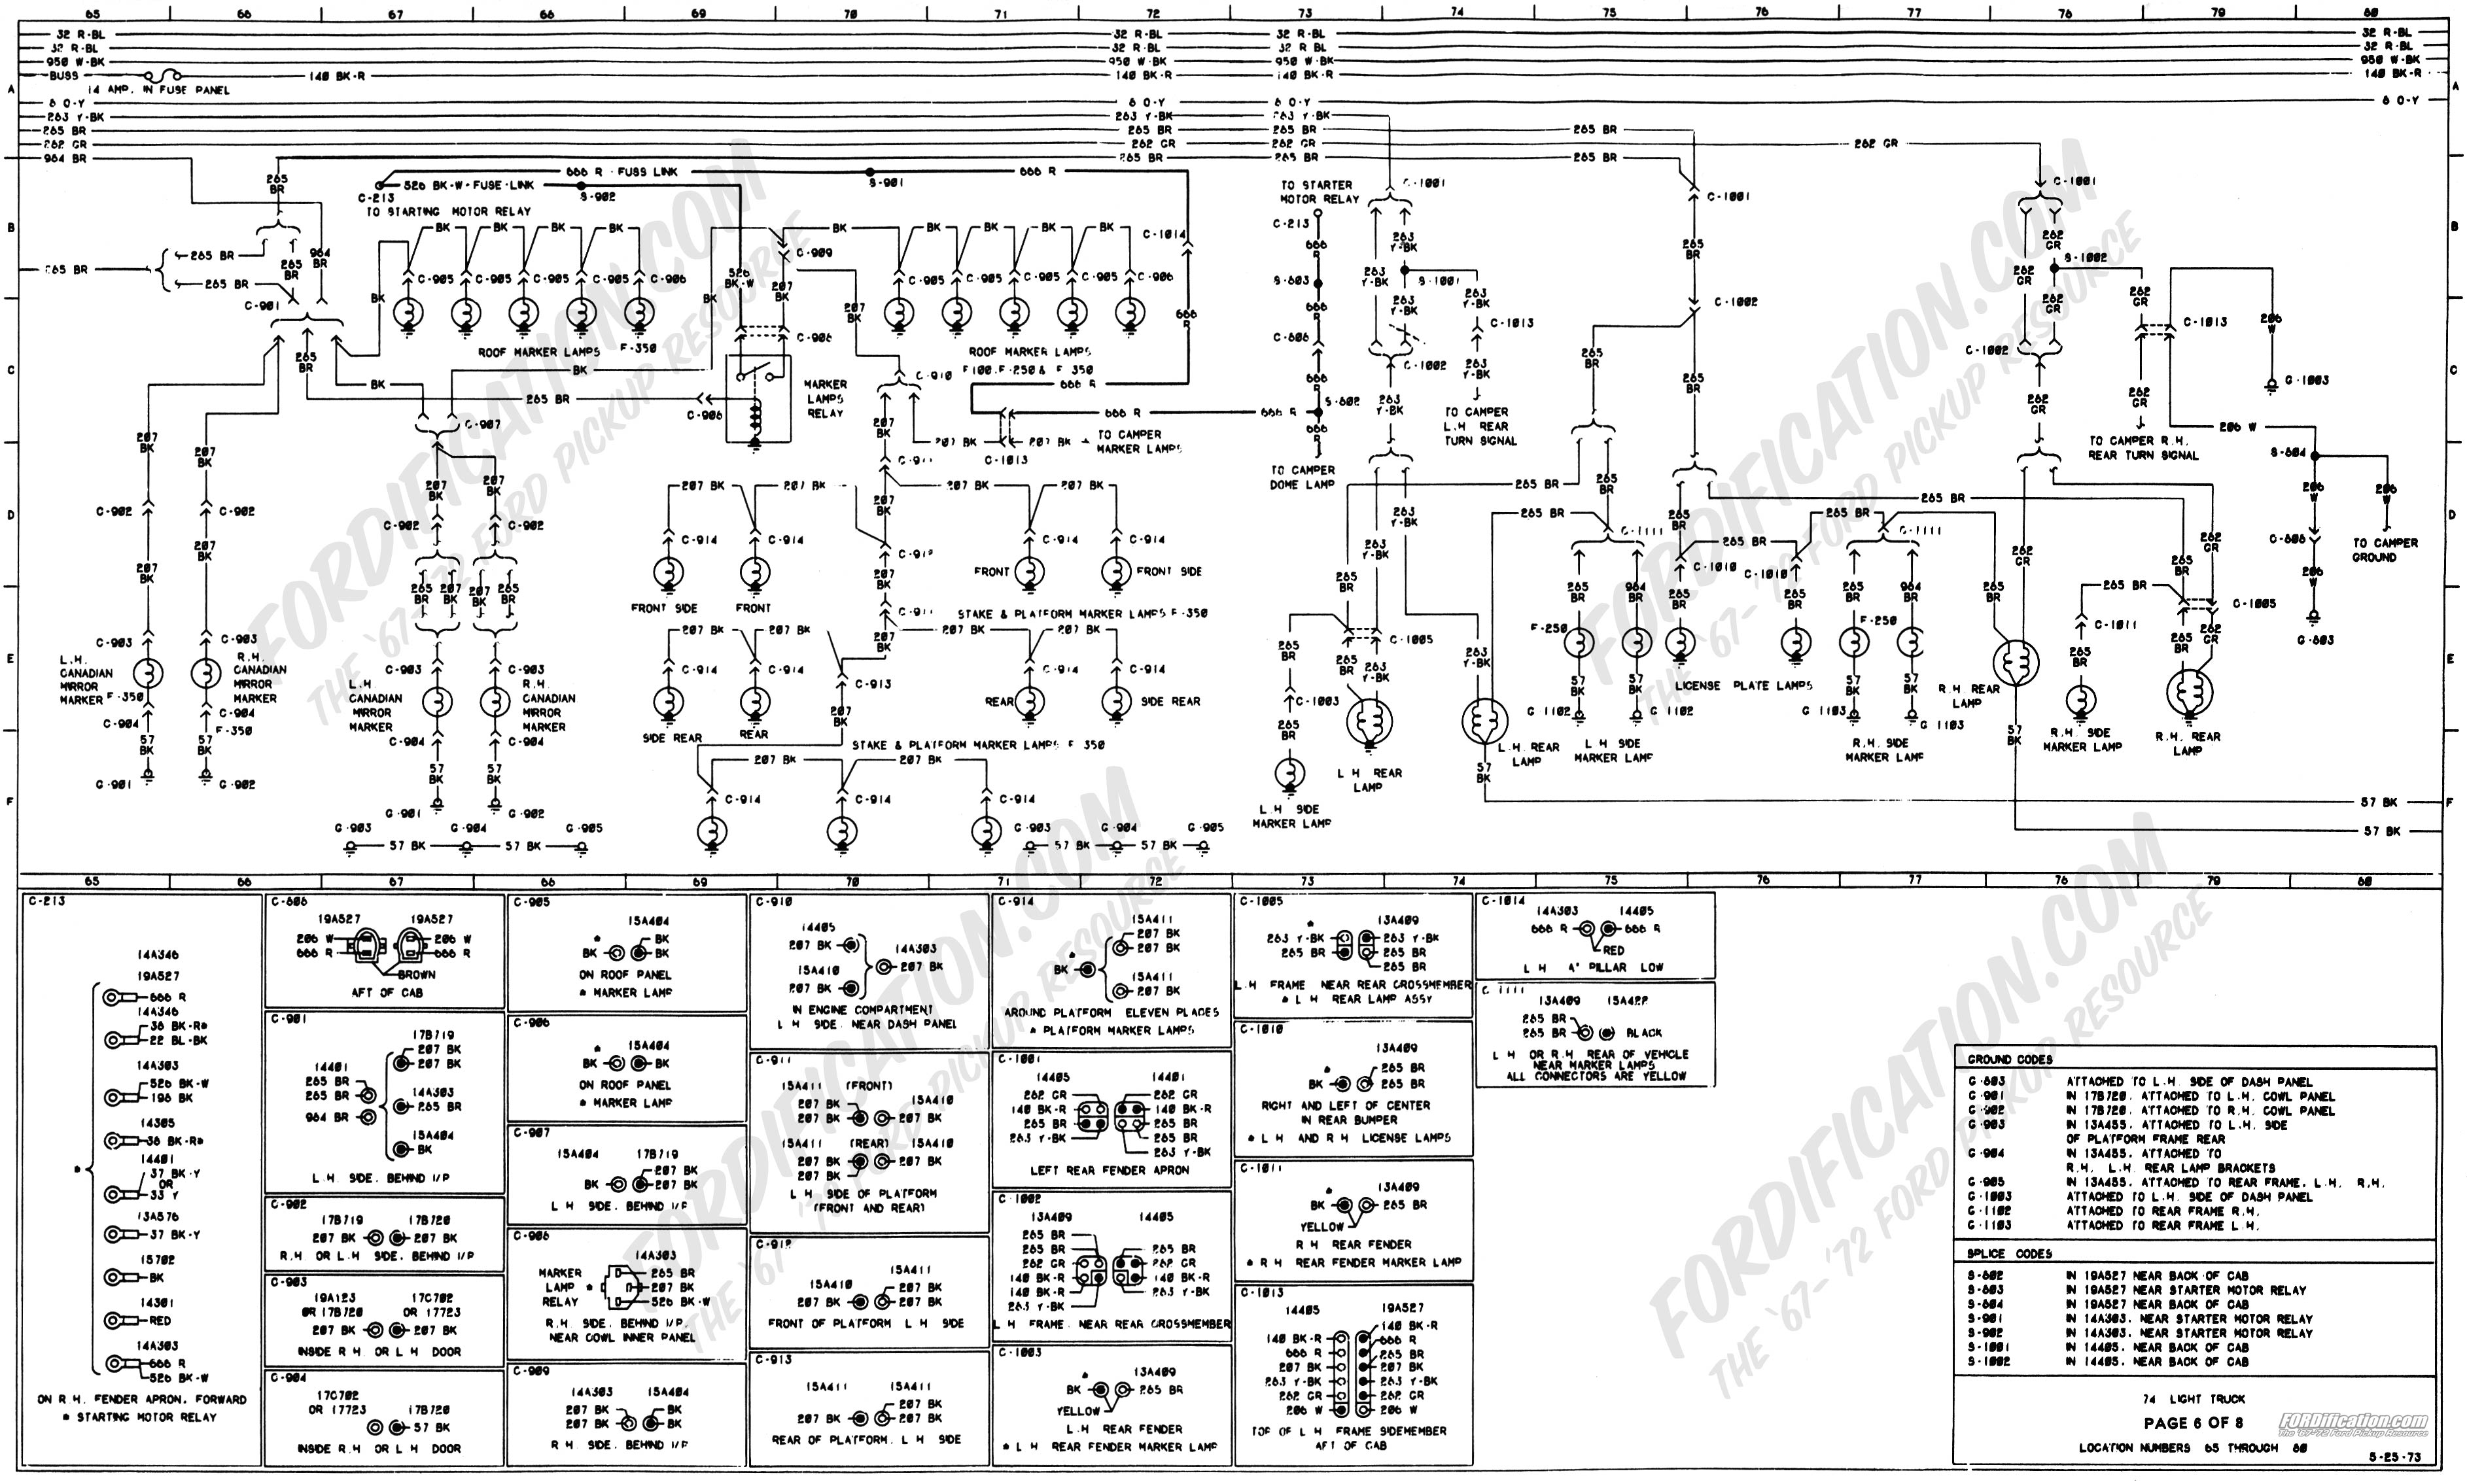 wiring_74master_6of8 ford e250 wiring diagram ford wiring diagrams instruction wiring diagrams for 2017 ford trucks at webbmarketing.co